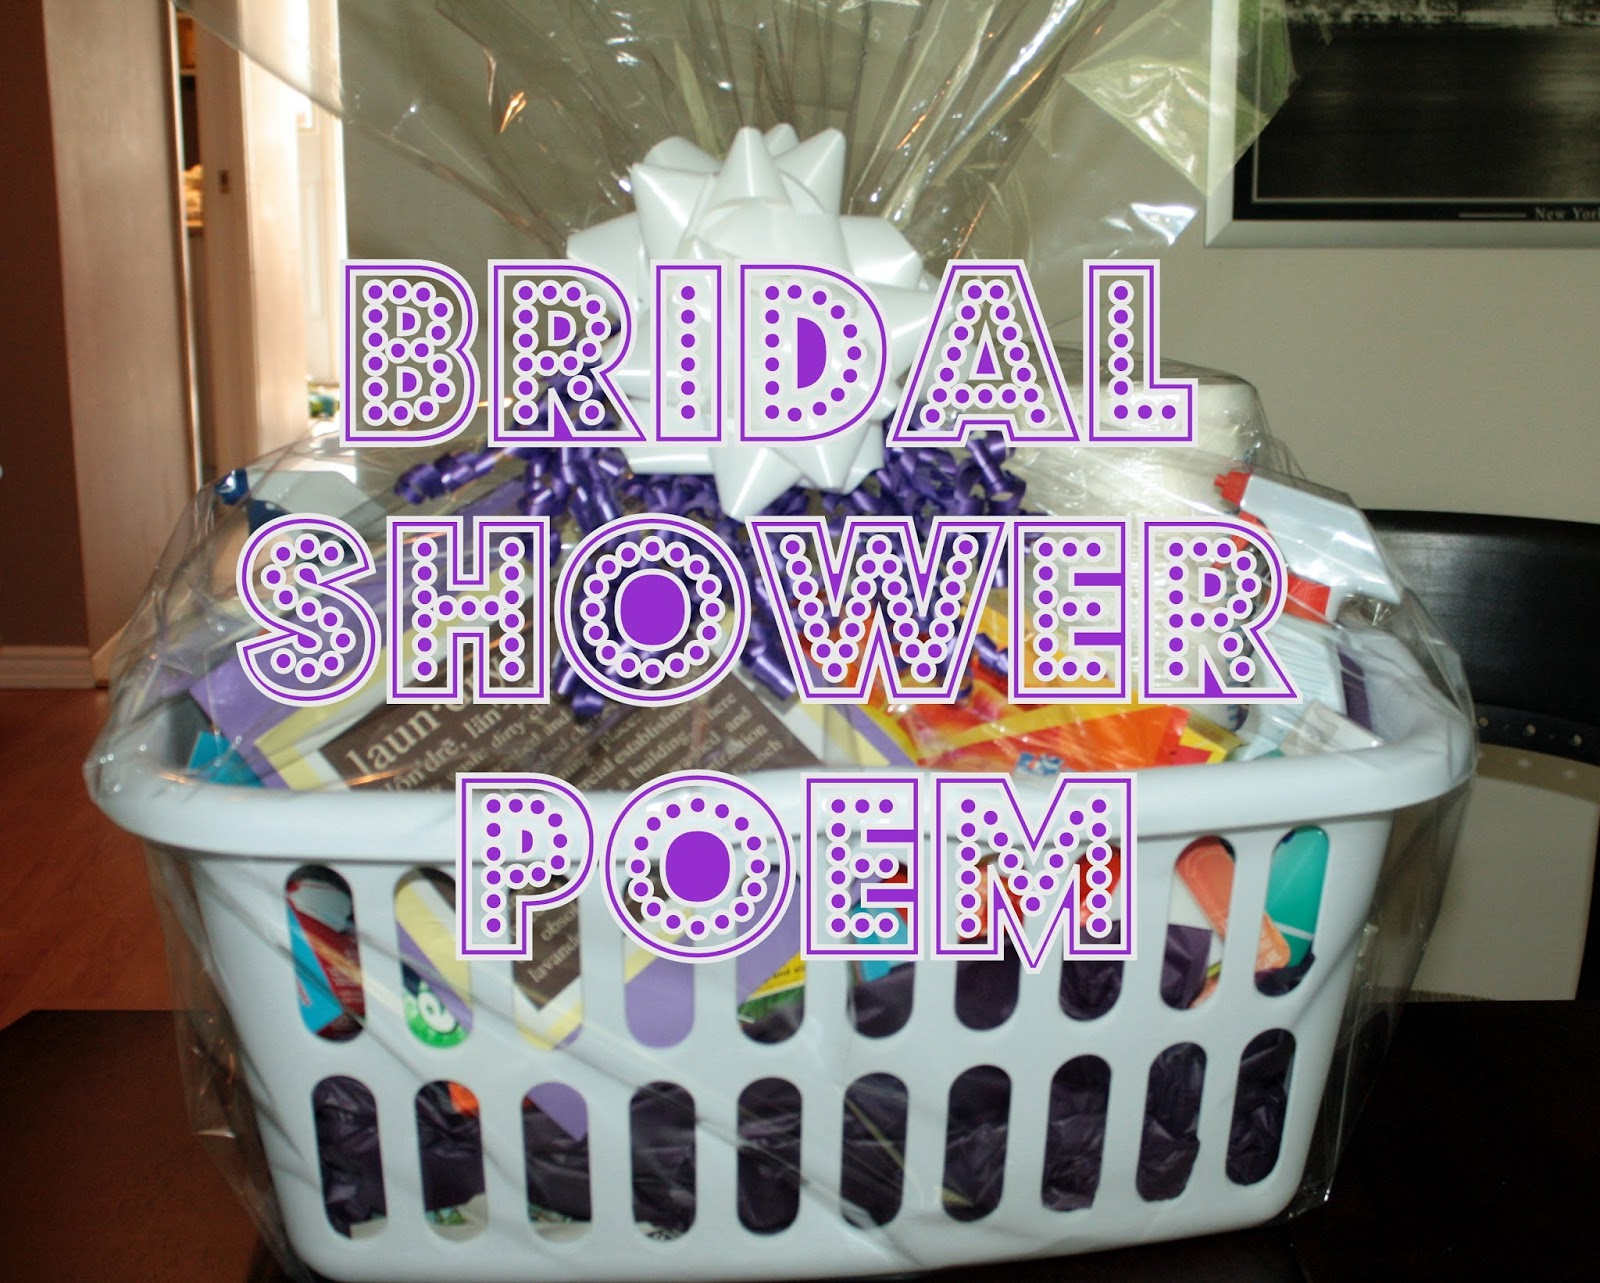 Wedding Shower Gift Basket Ideas : The poem goes as follows (thanks Mummydeals.org for the great idea!!):